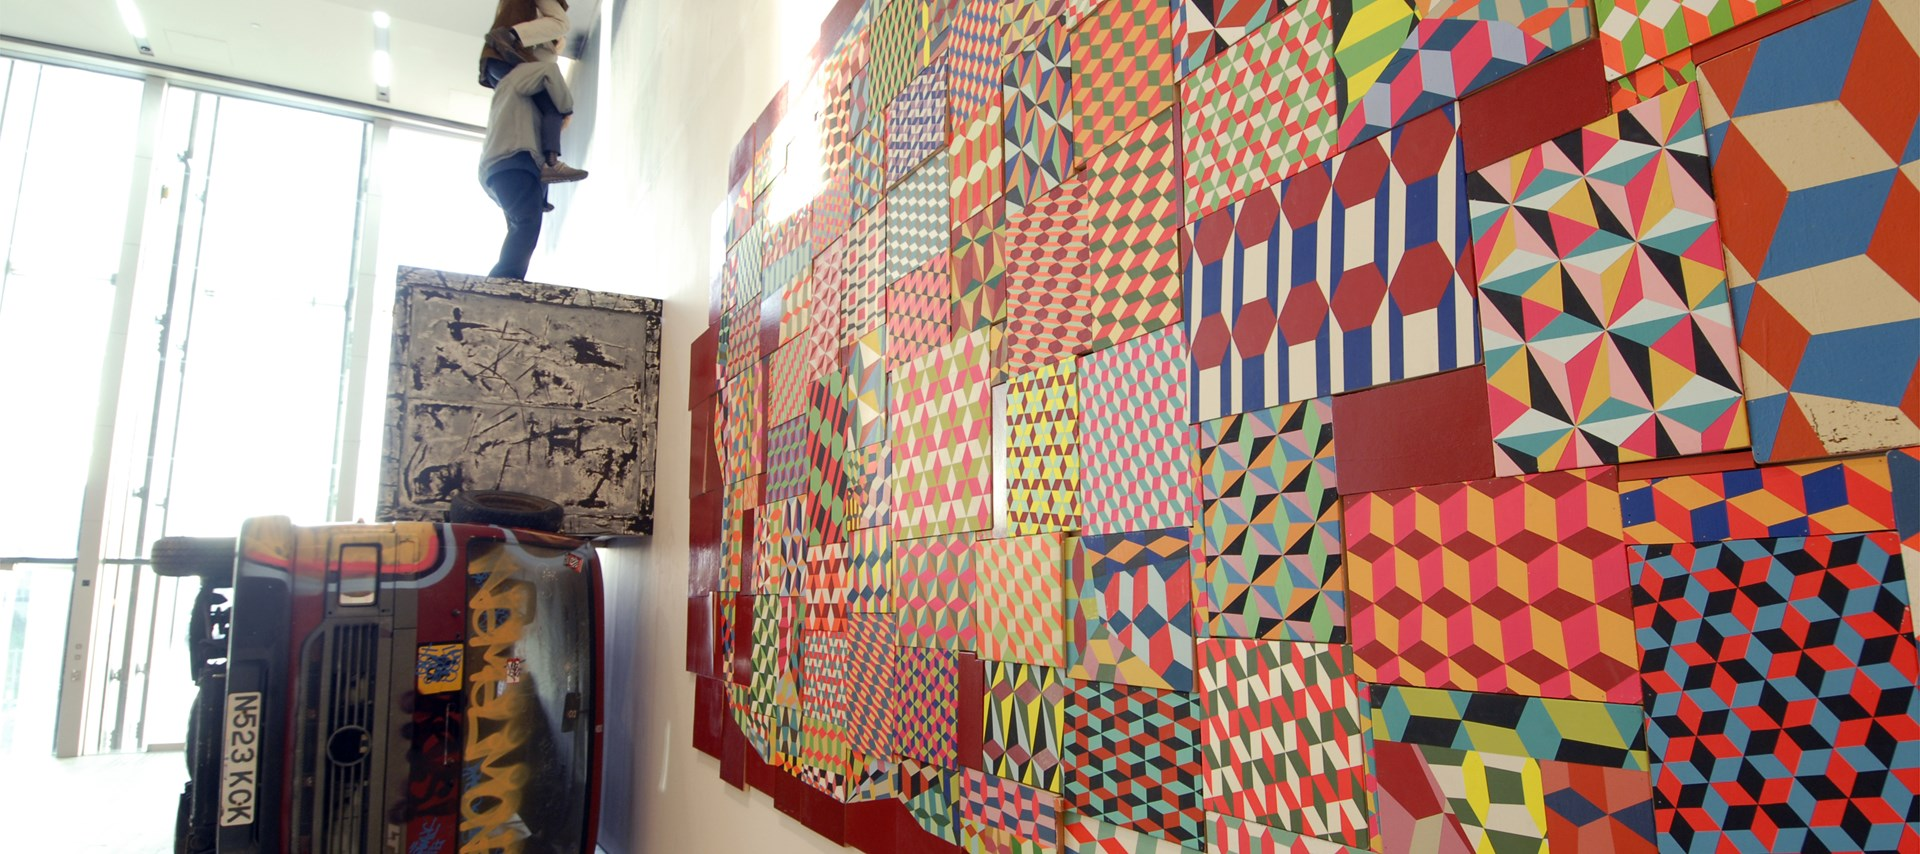 Barry McGee: They Don't Make This Anymore: Exhibition Shot by Colin Davison